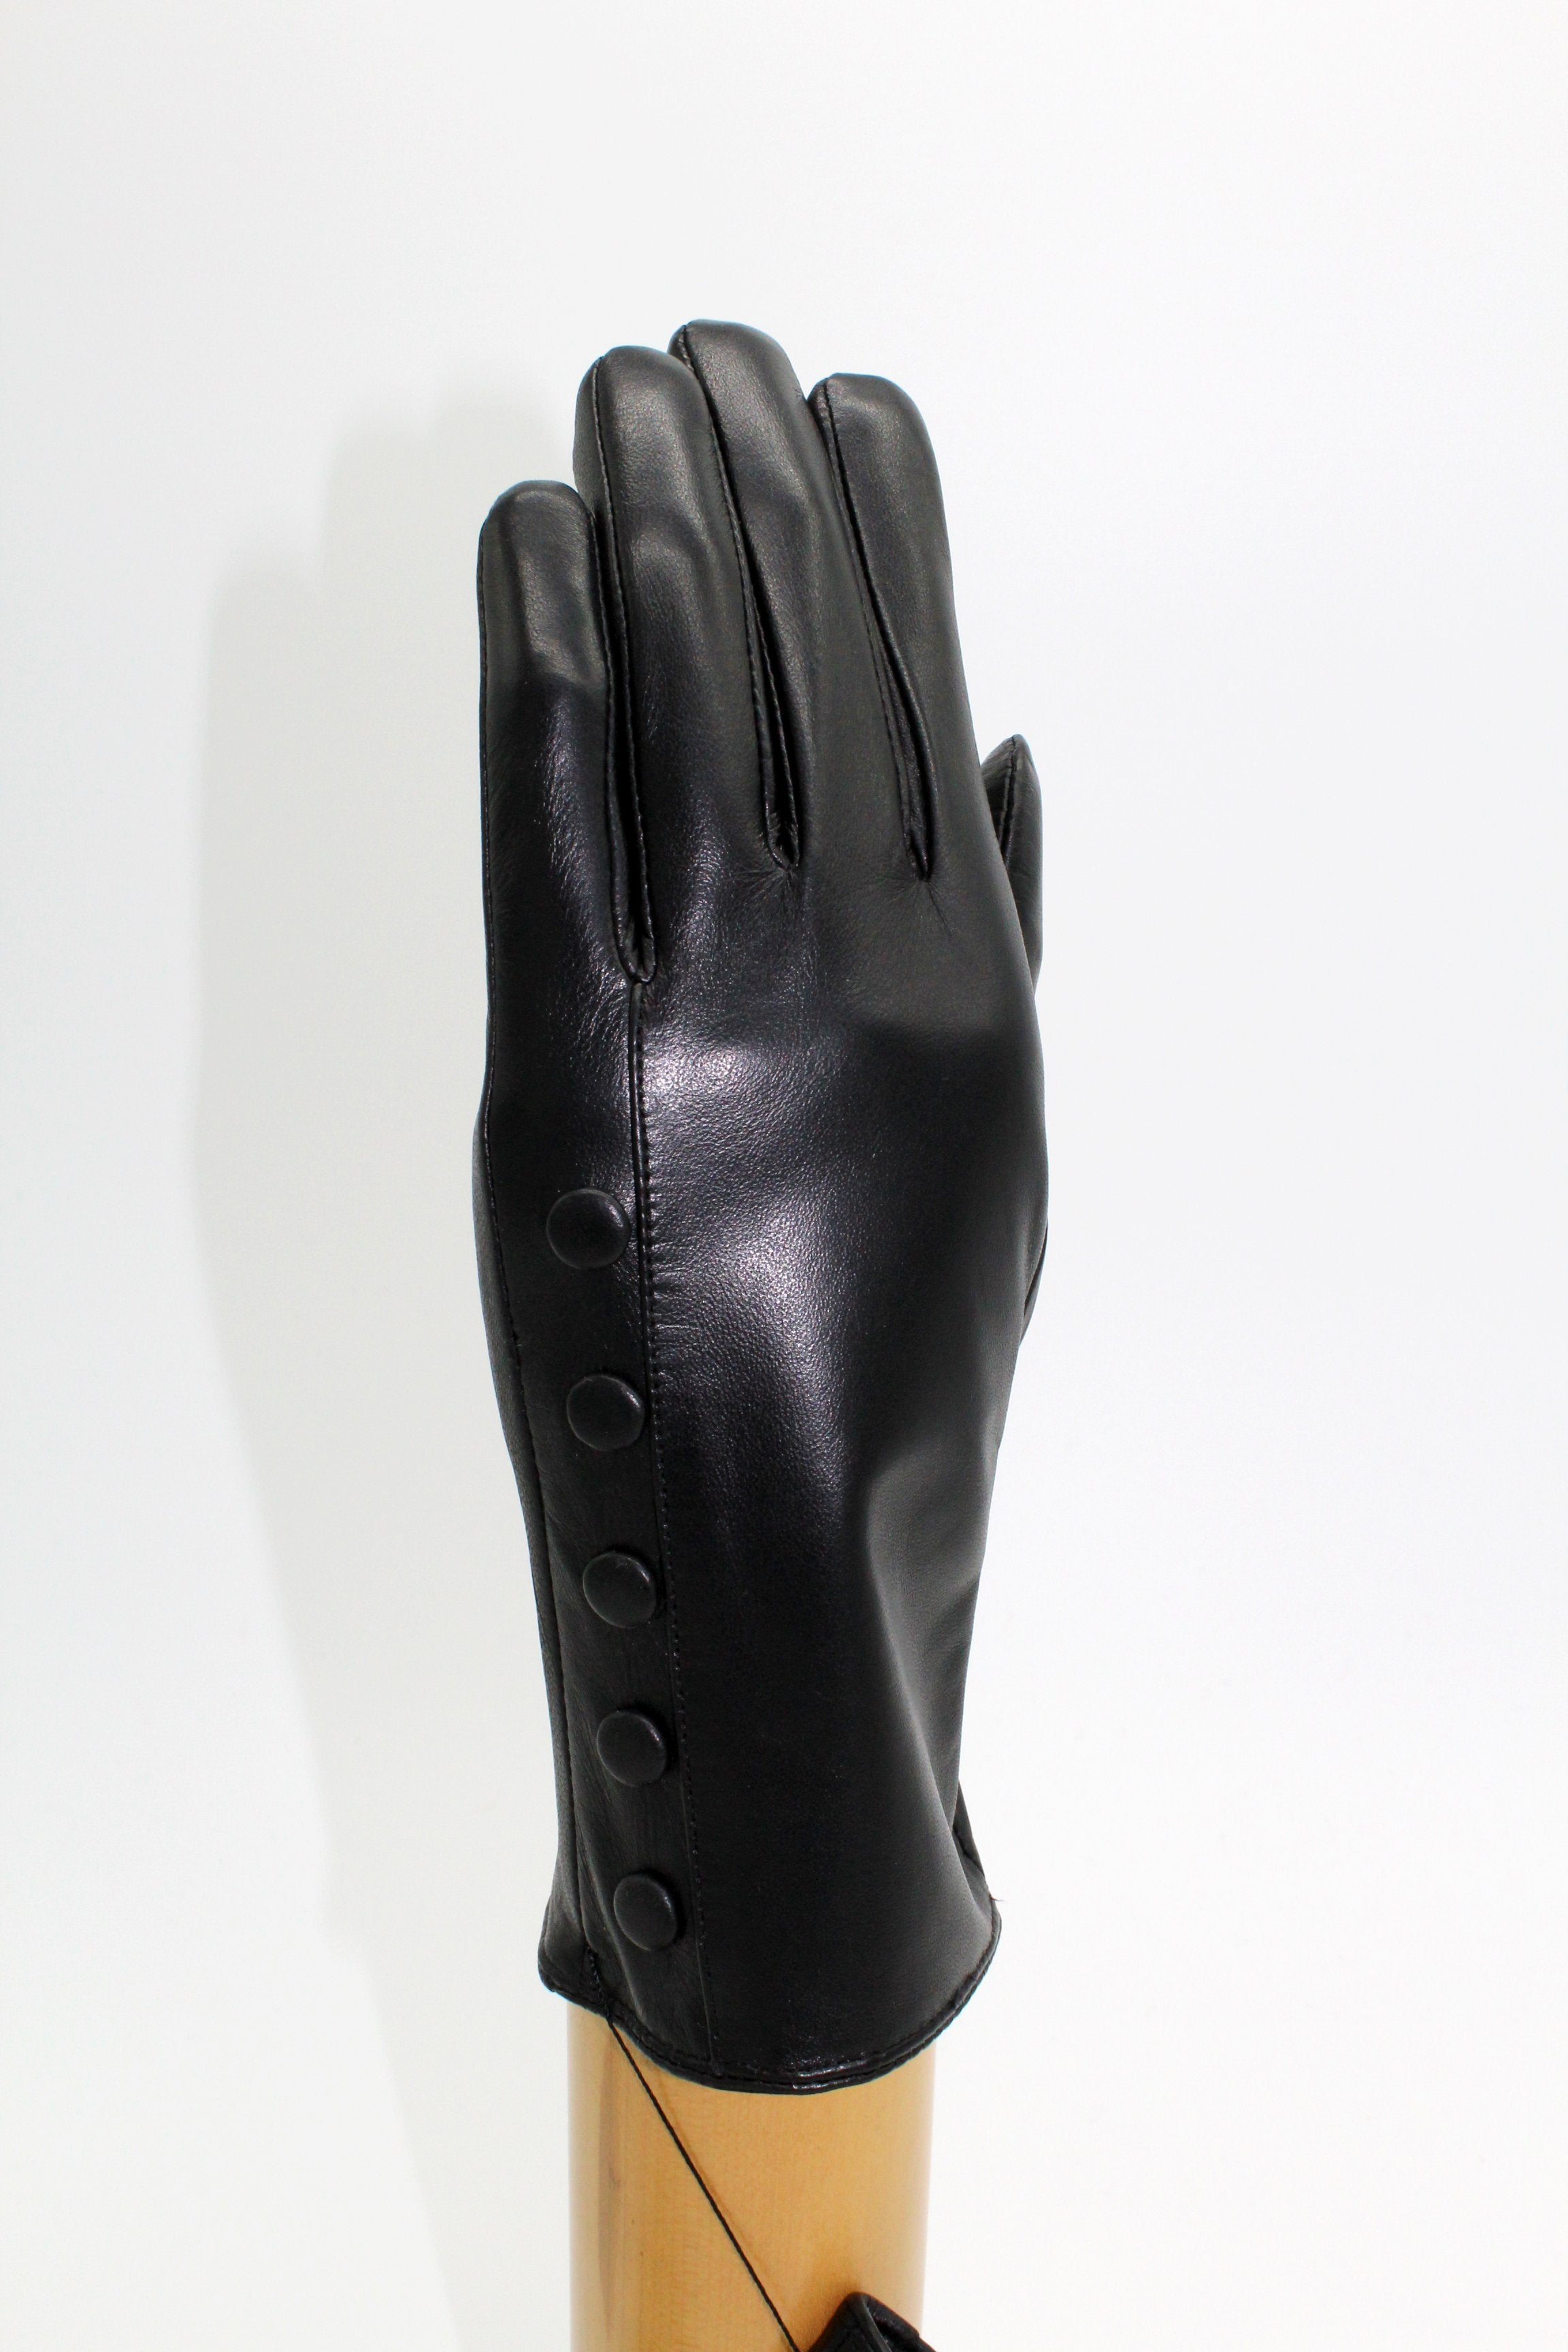 cashmere lined leather gloves Black €59